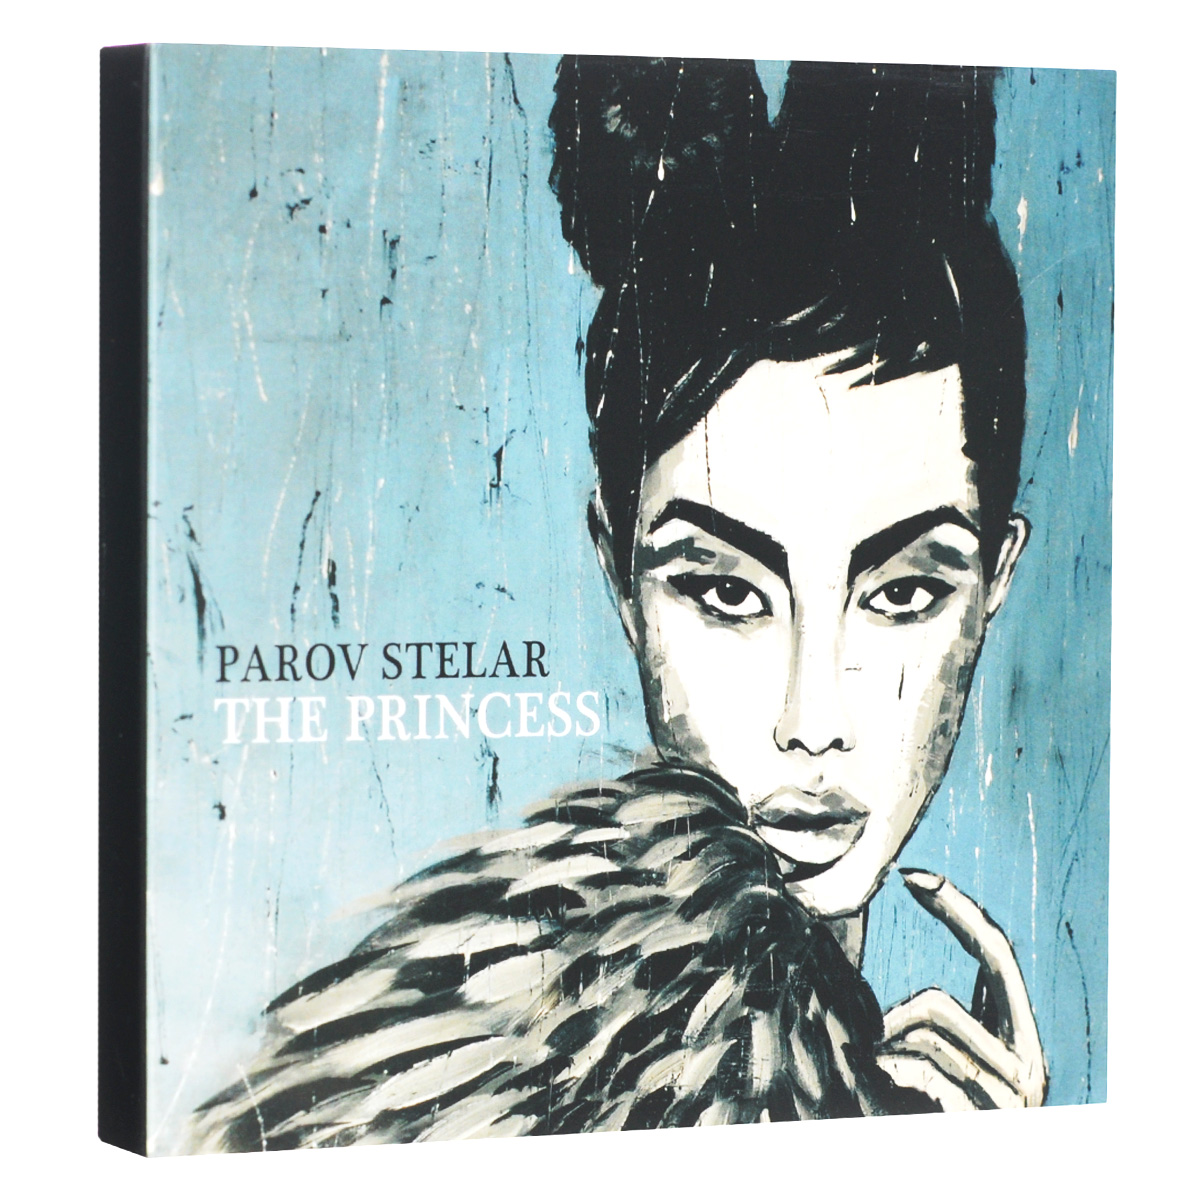 Parov Stelar Parov Stelar. The Princess (2 CD) port noir port noir   any way the wind carries  2 lp